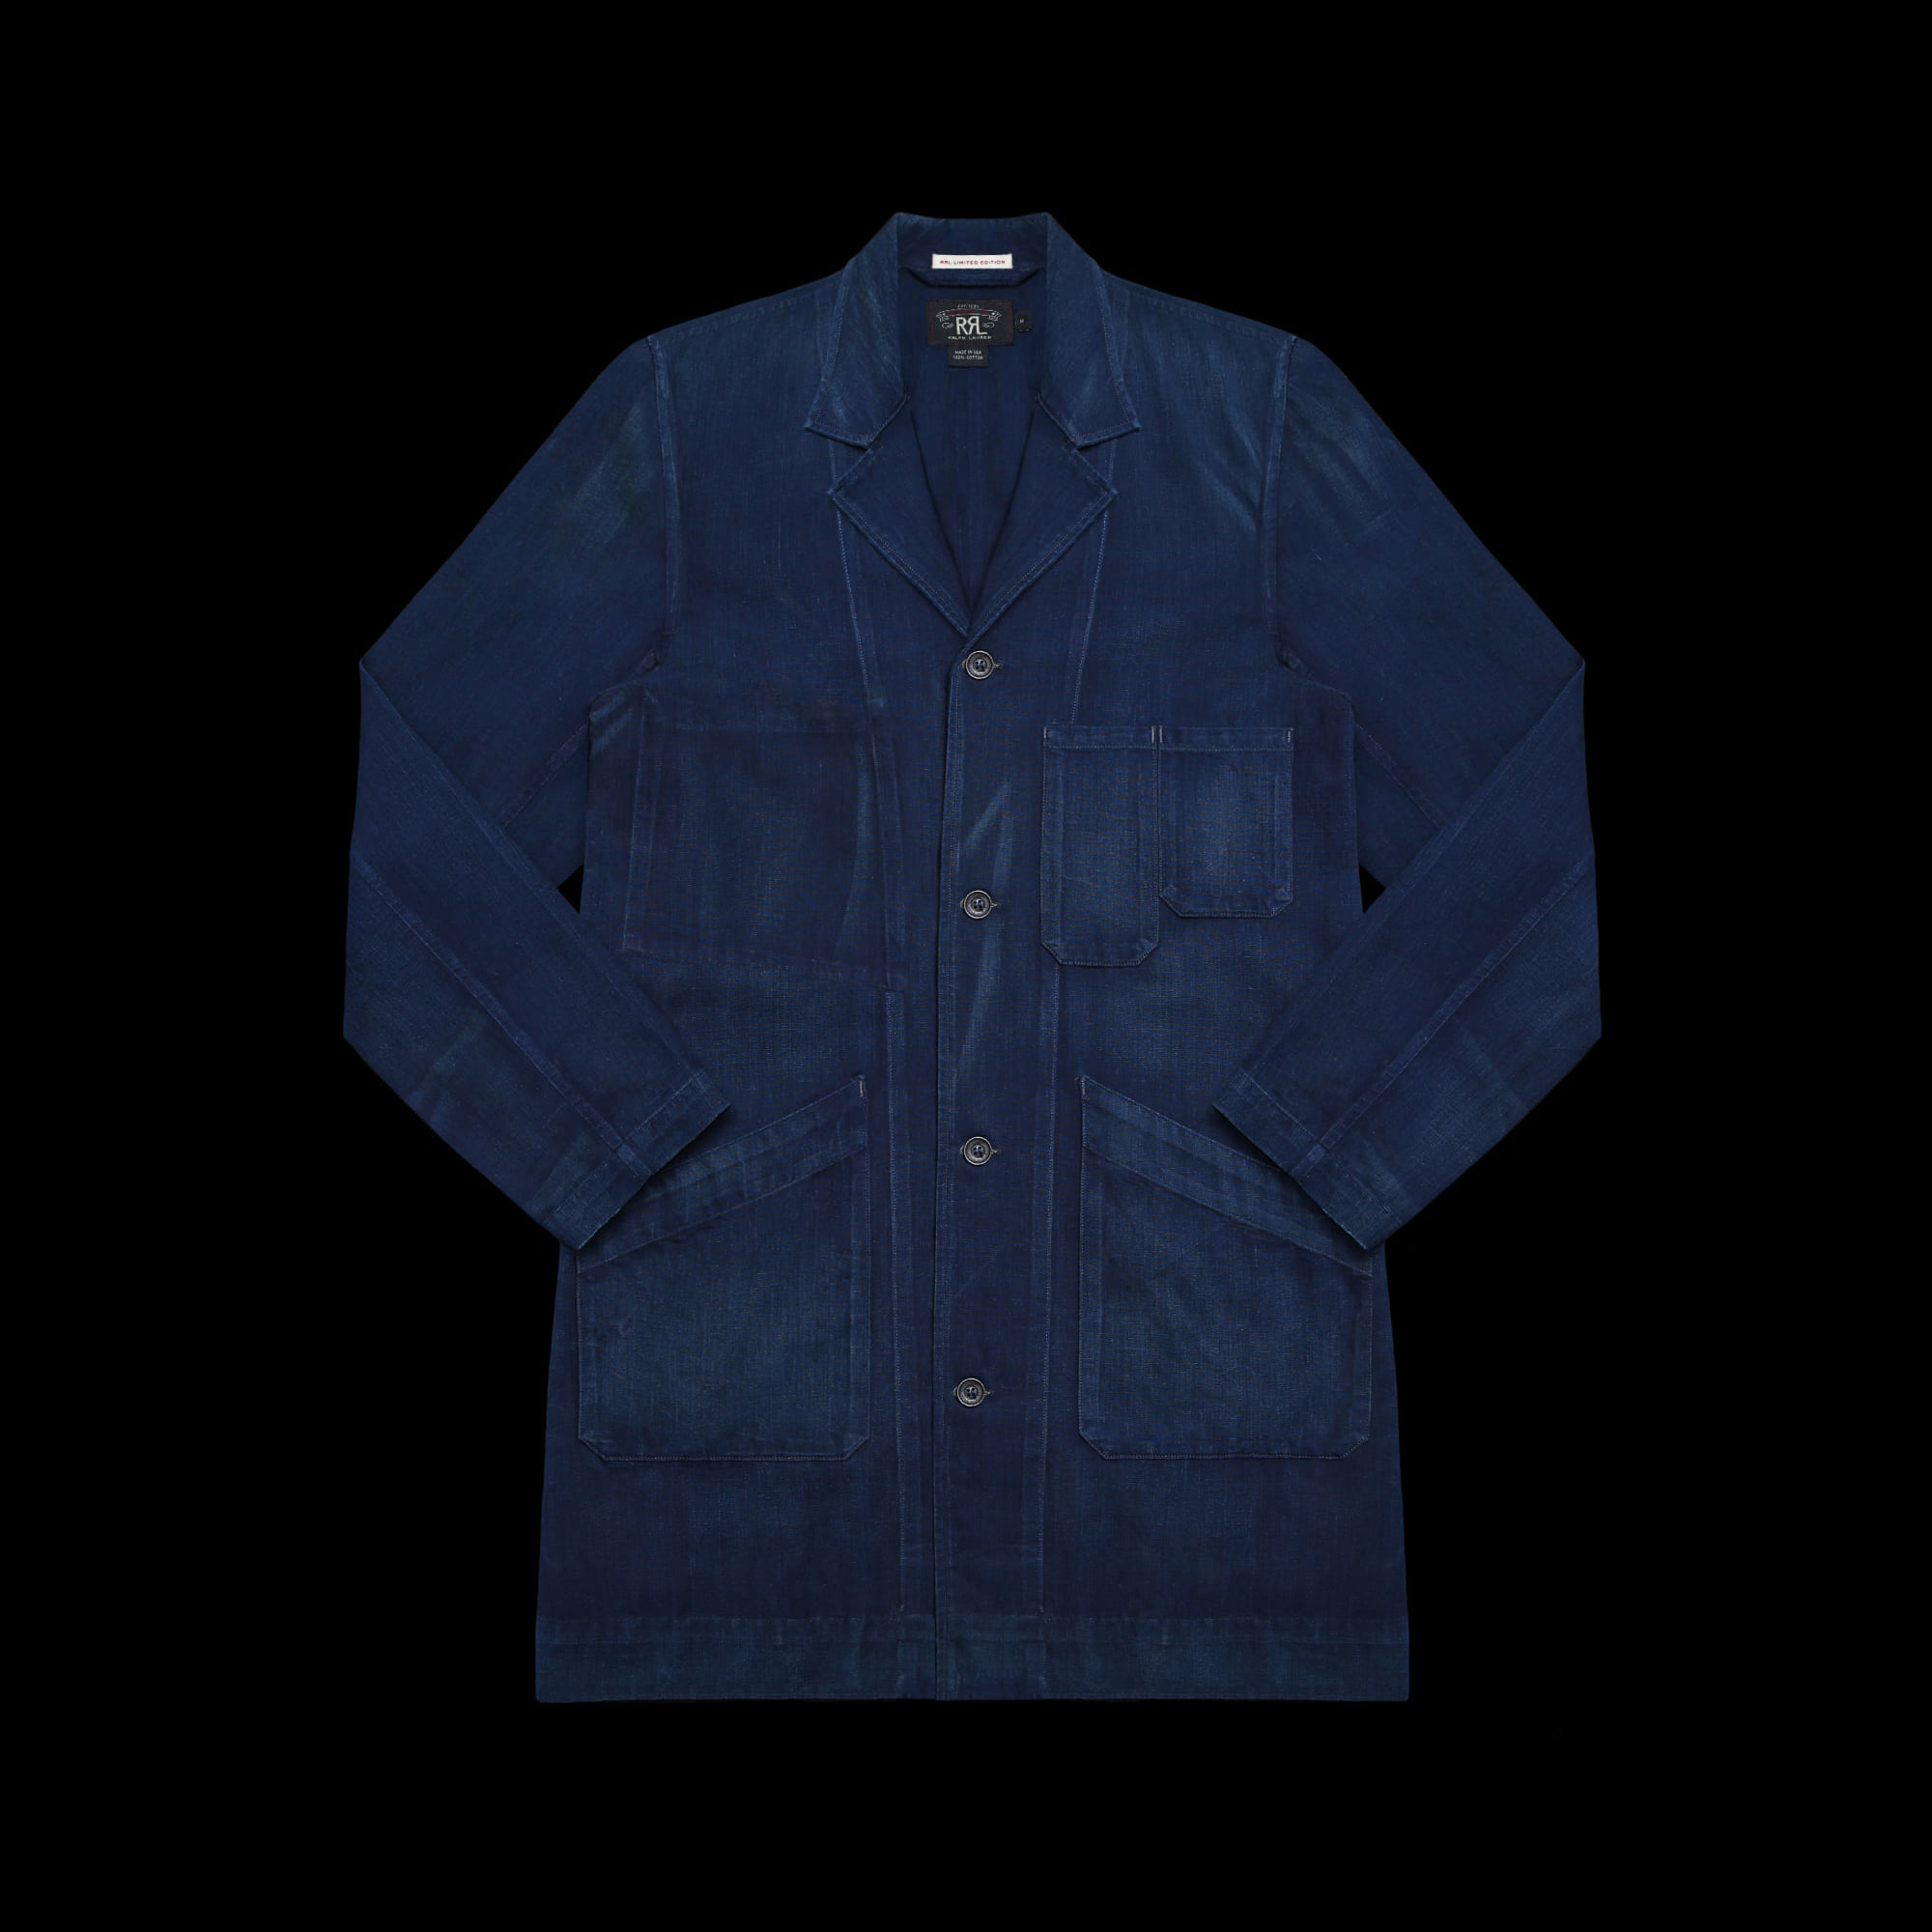 RRLLIMITED EDITIONDENIM SHOP COAT